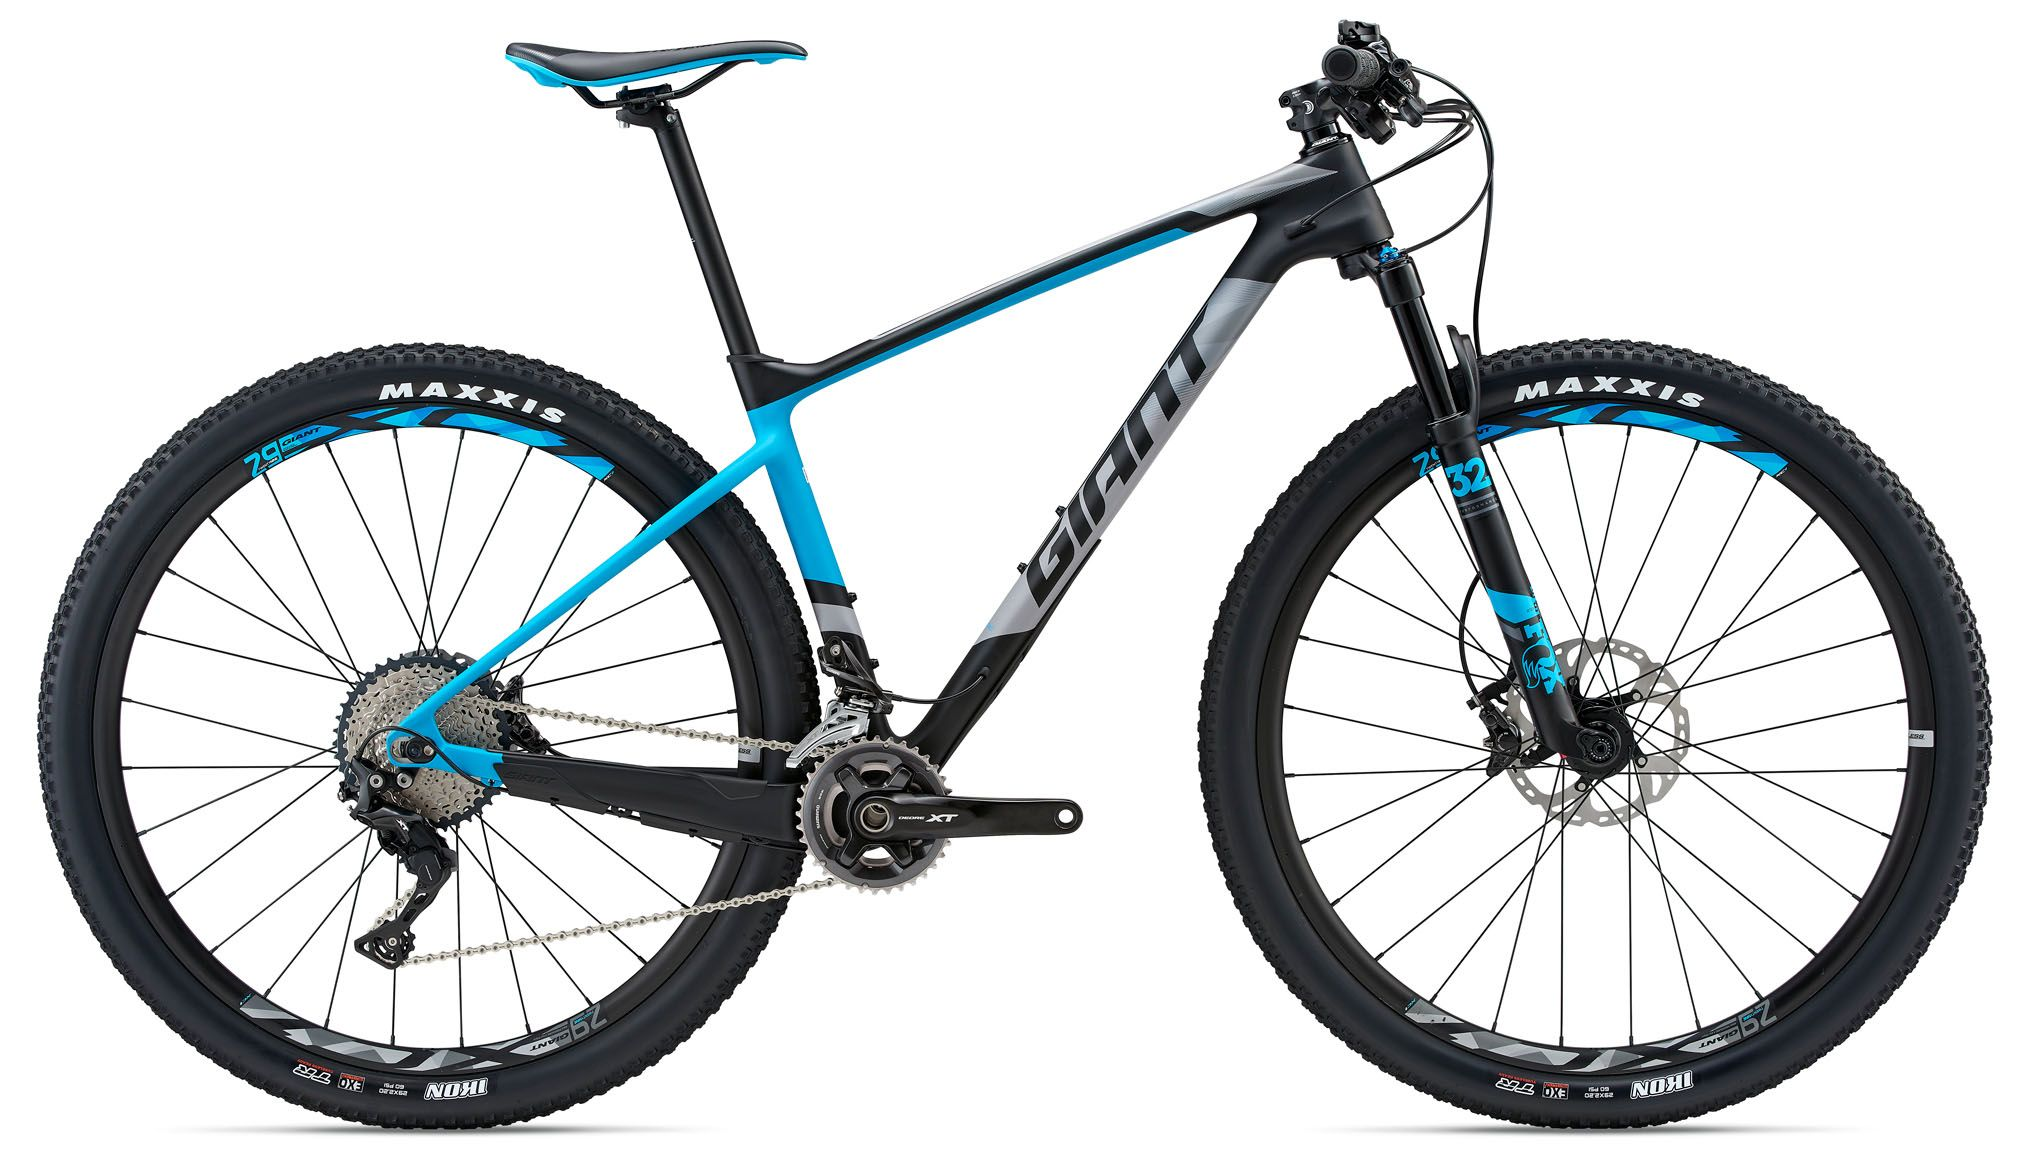 Велосипед Giant XTC Advanced 29er 1.5 GE 2018 велосипед giant xtc advanced 27 5 2 2014